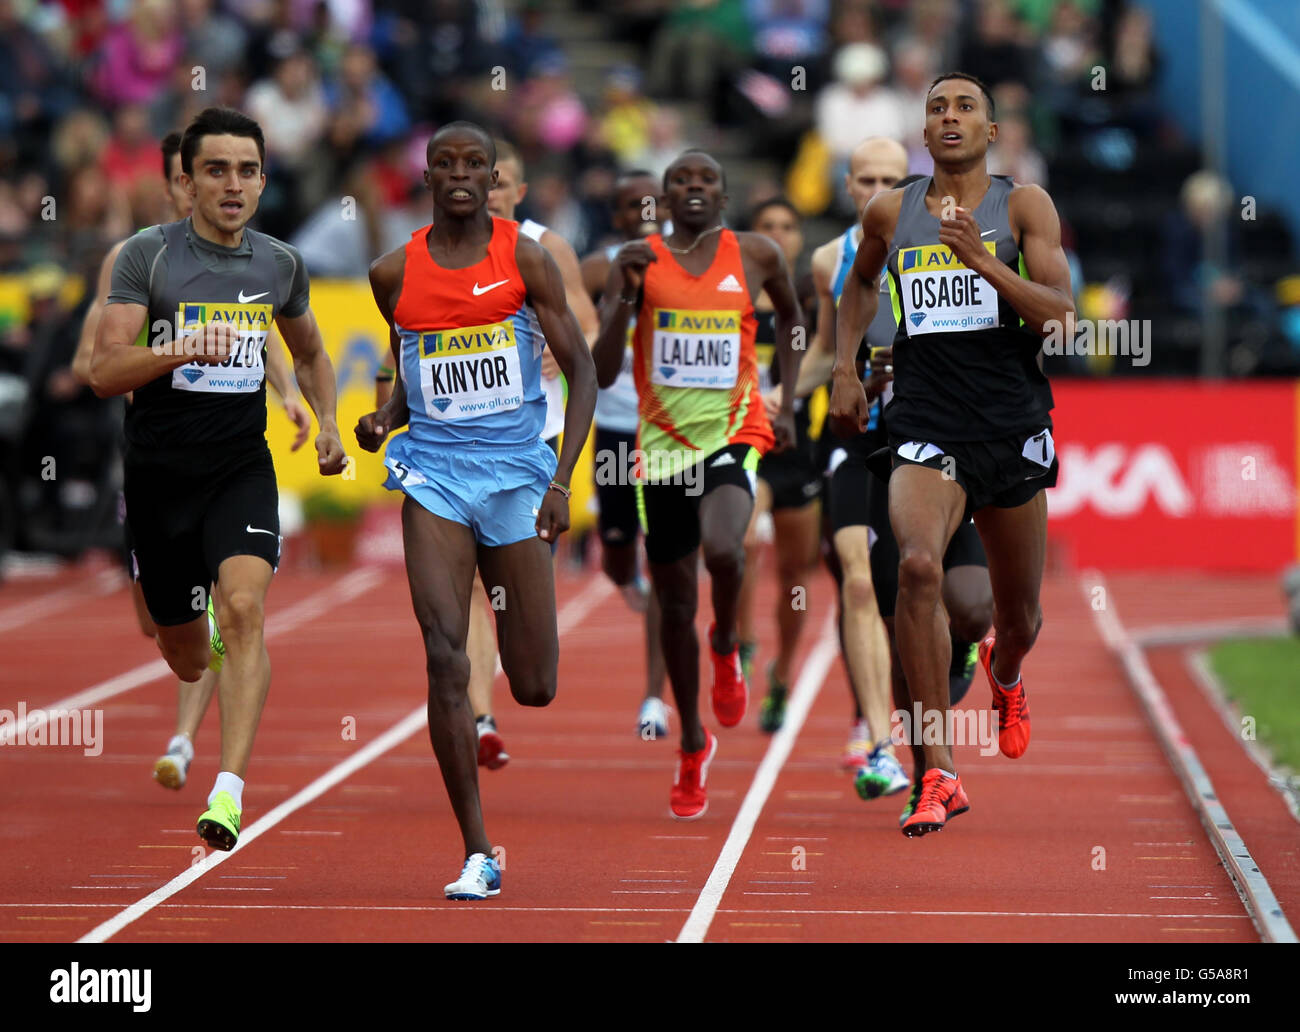 Athletics - Samsung Diamond League - Aviva London Grand Prix - Day Two - Crystal Palace - Stock Image